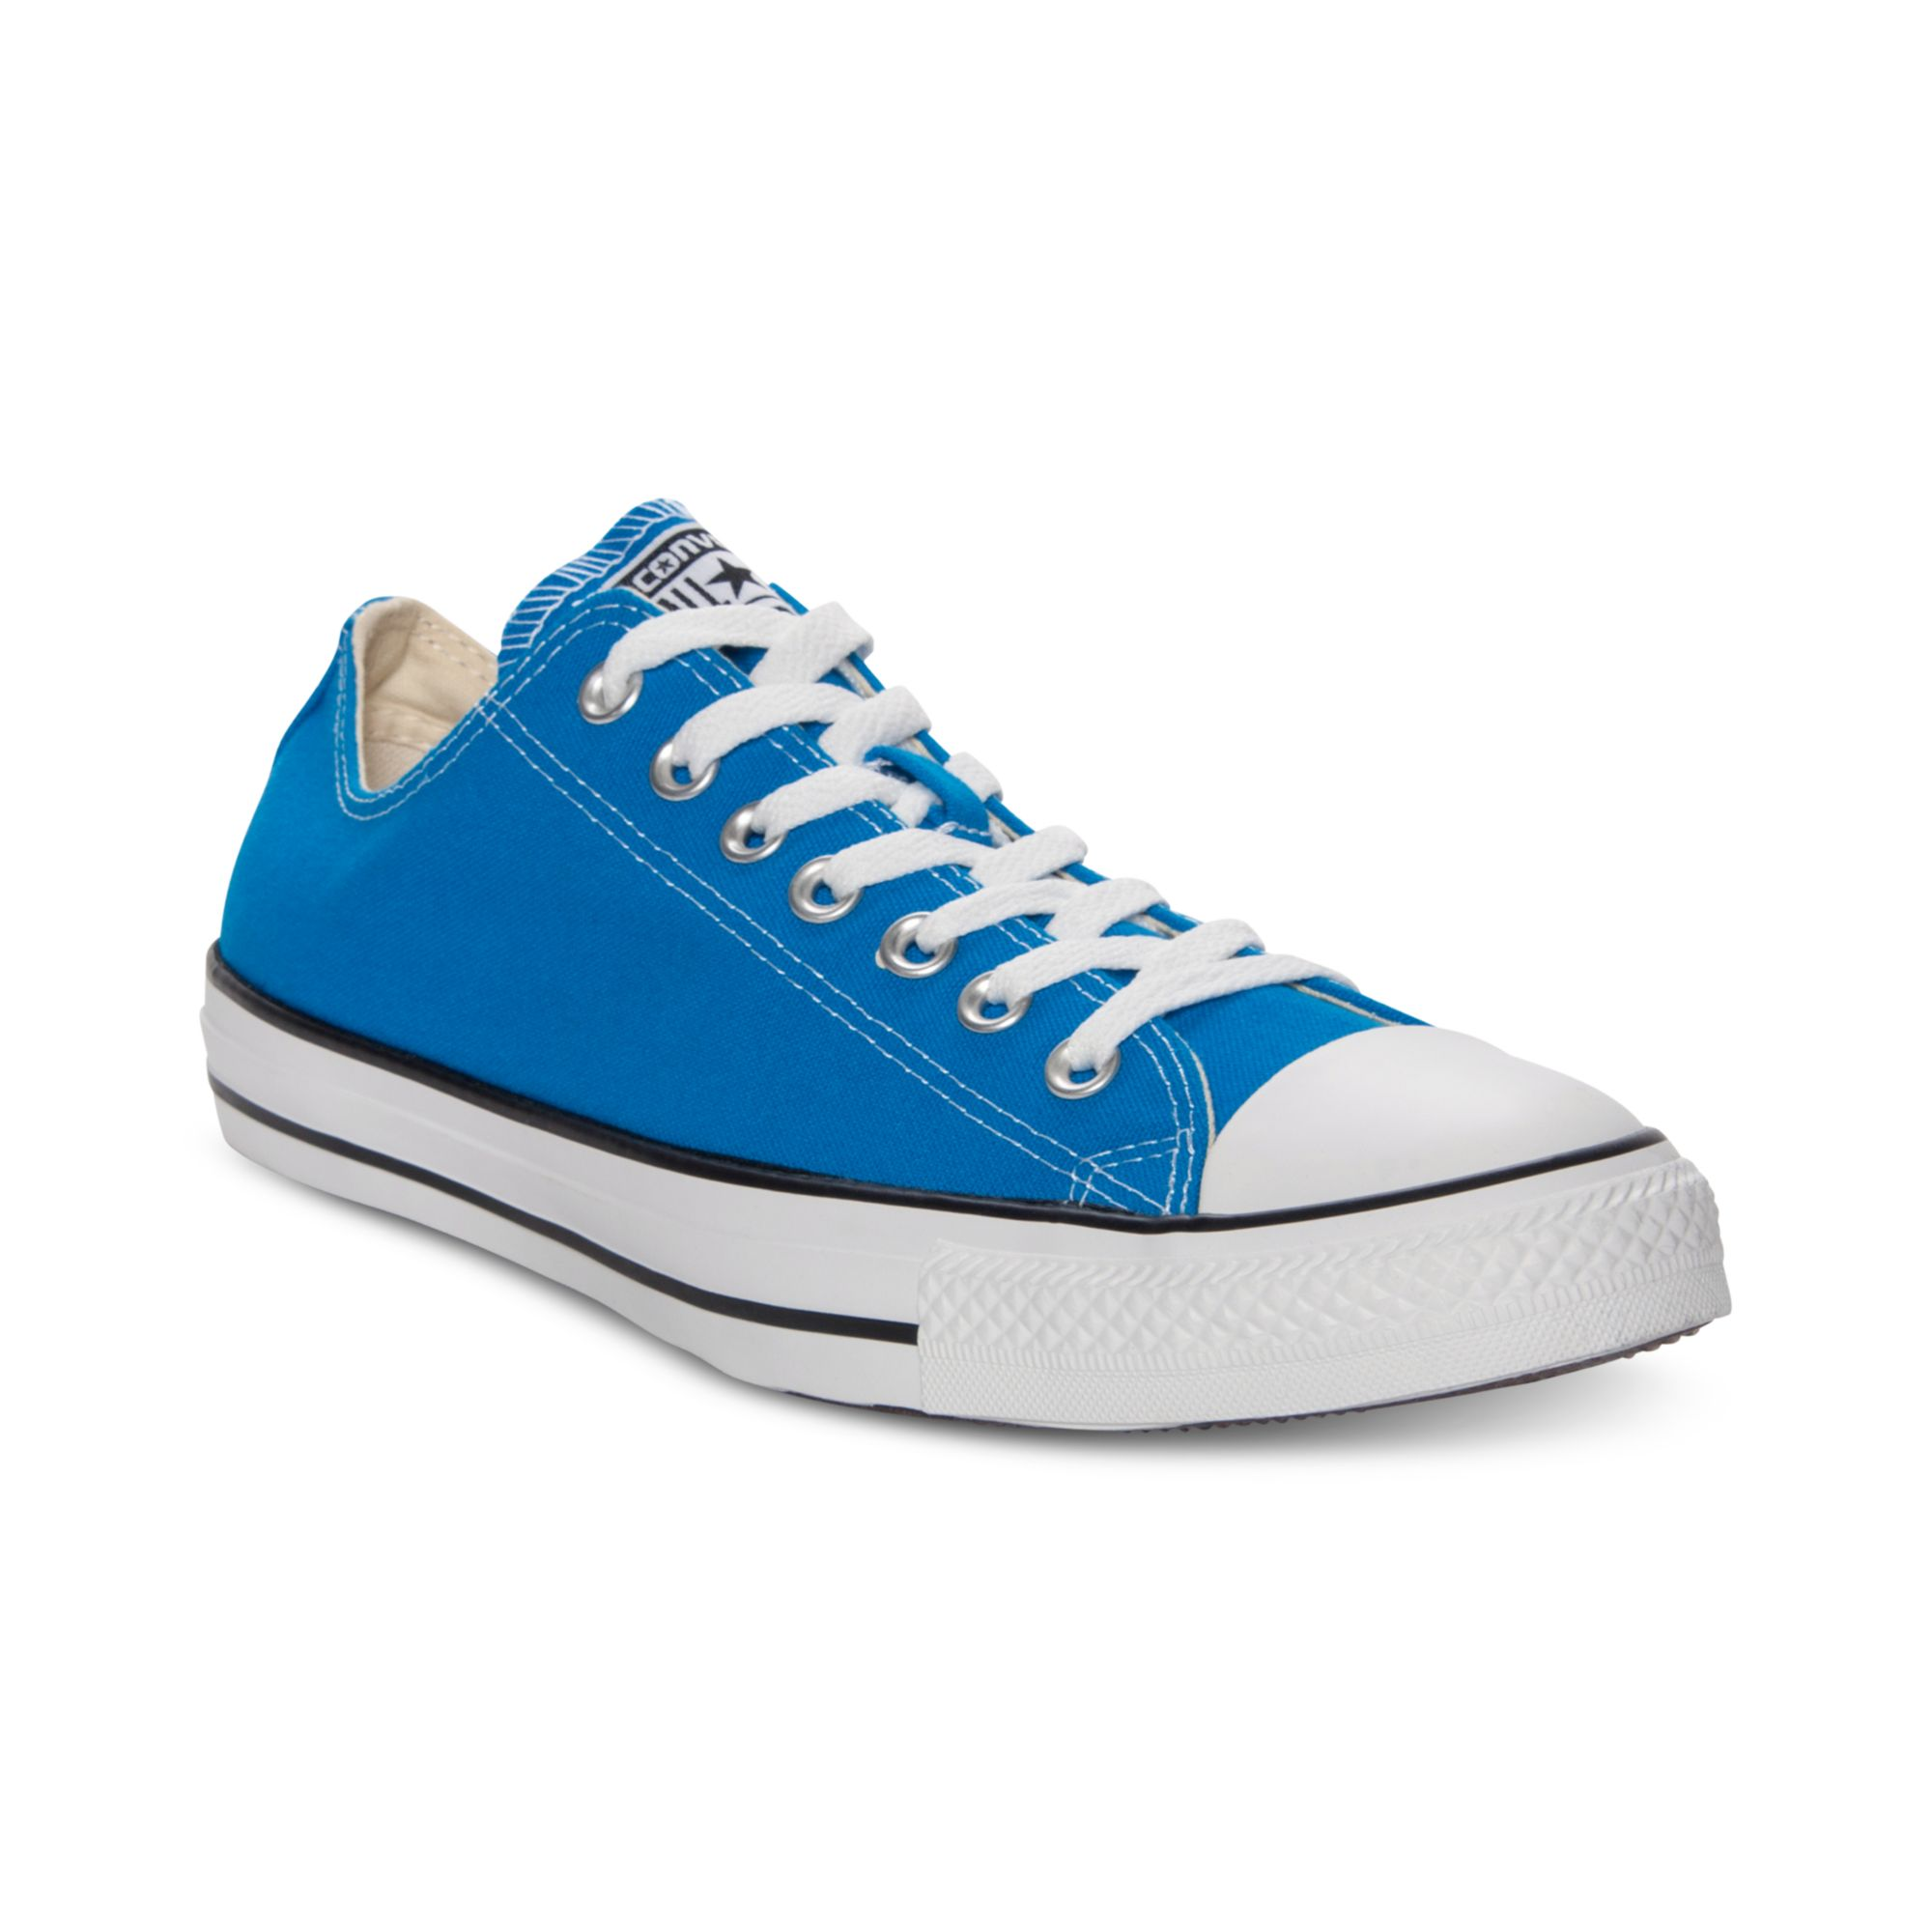 Converse Chuck Taylor Ox Casual Sneakers in Blue for Men